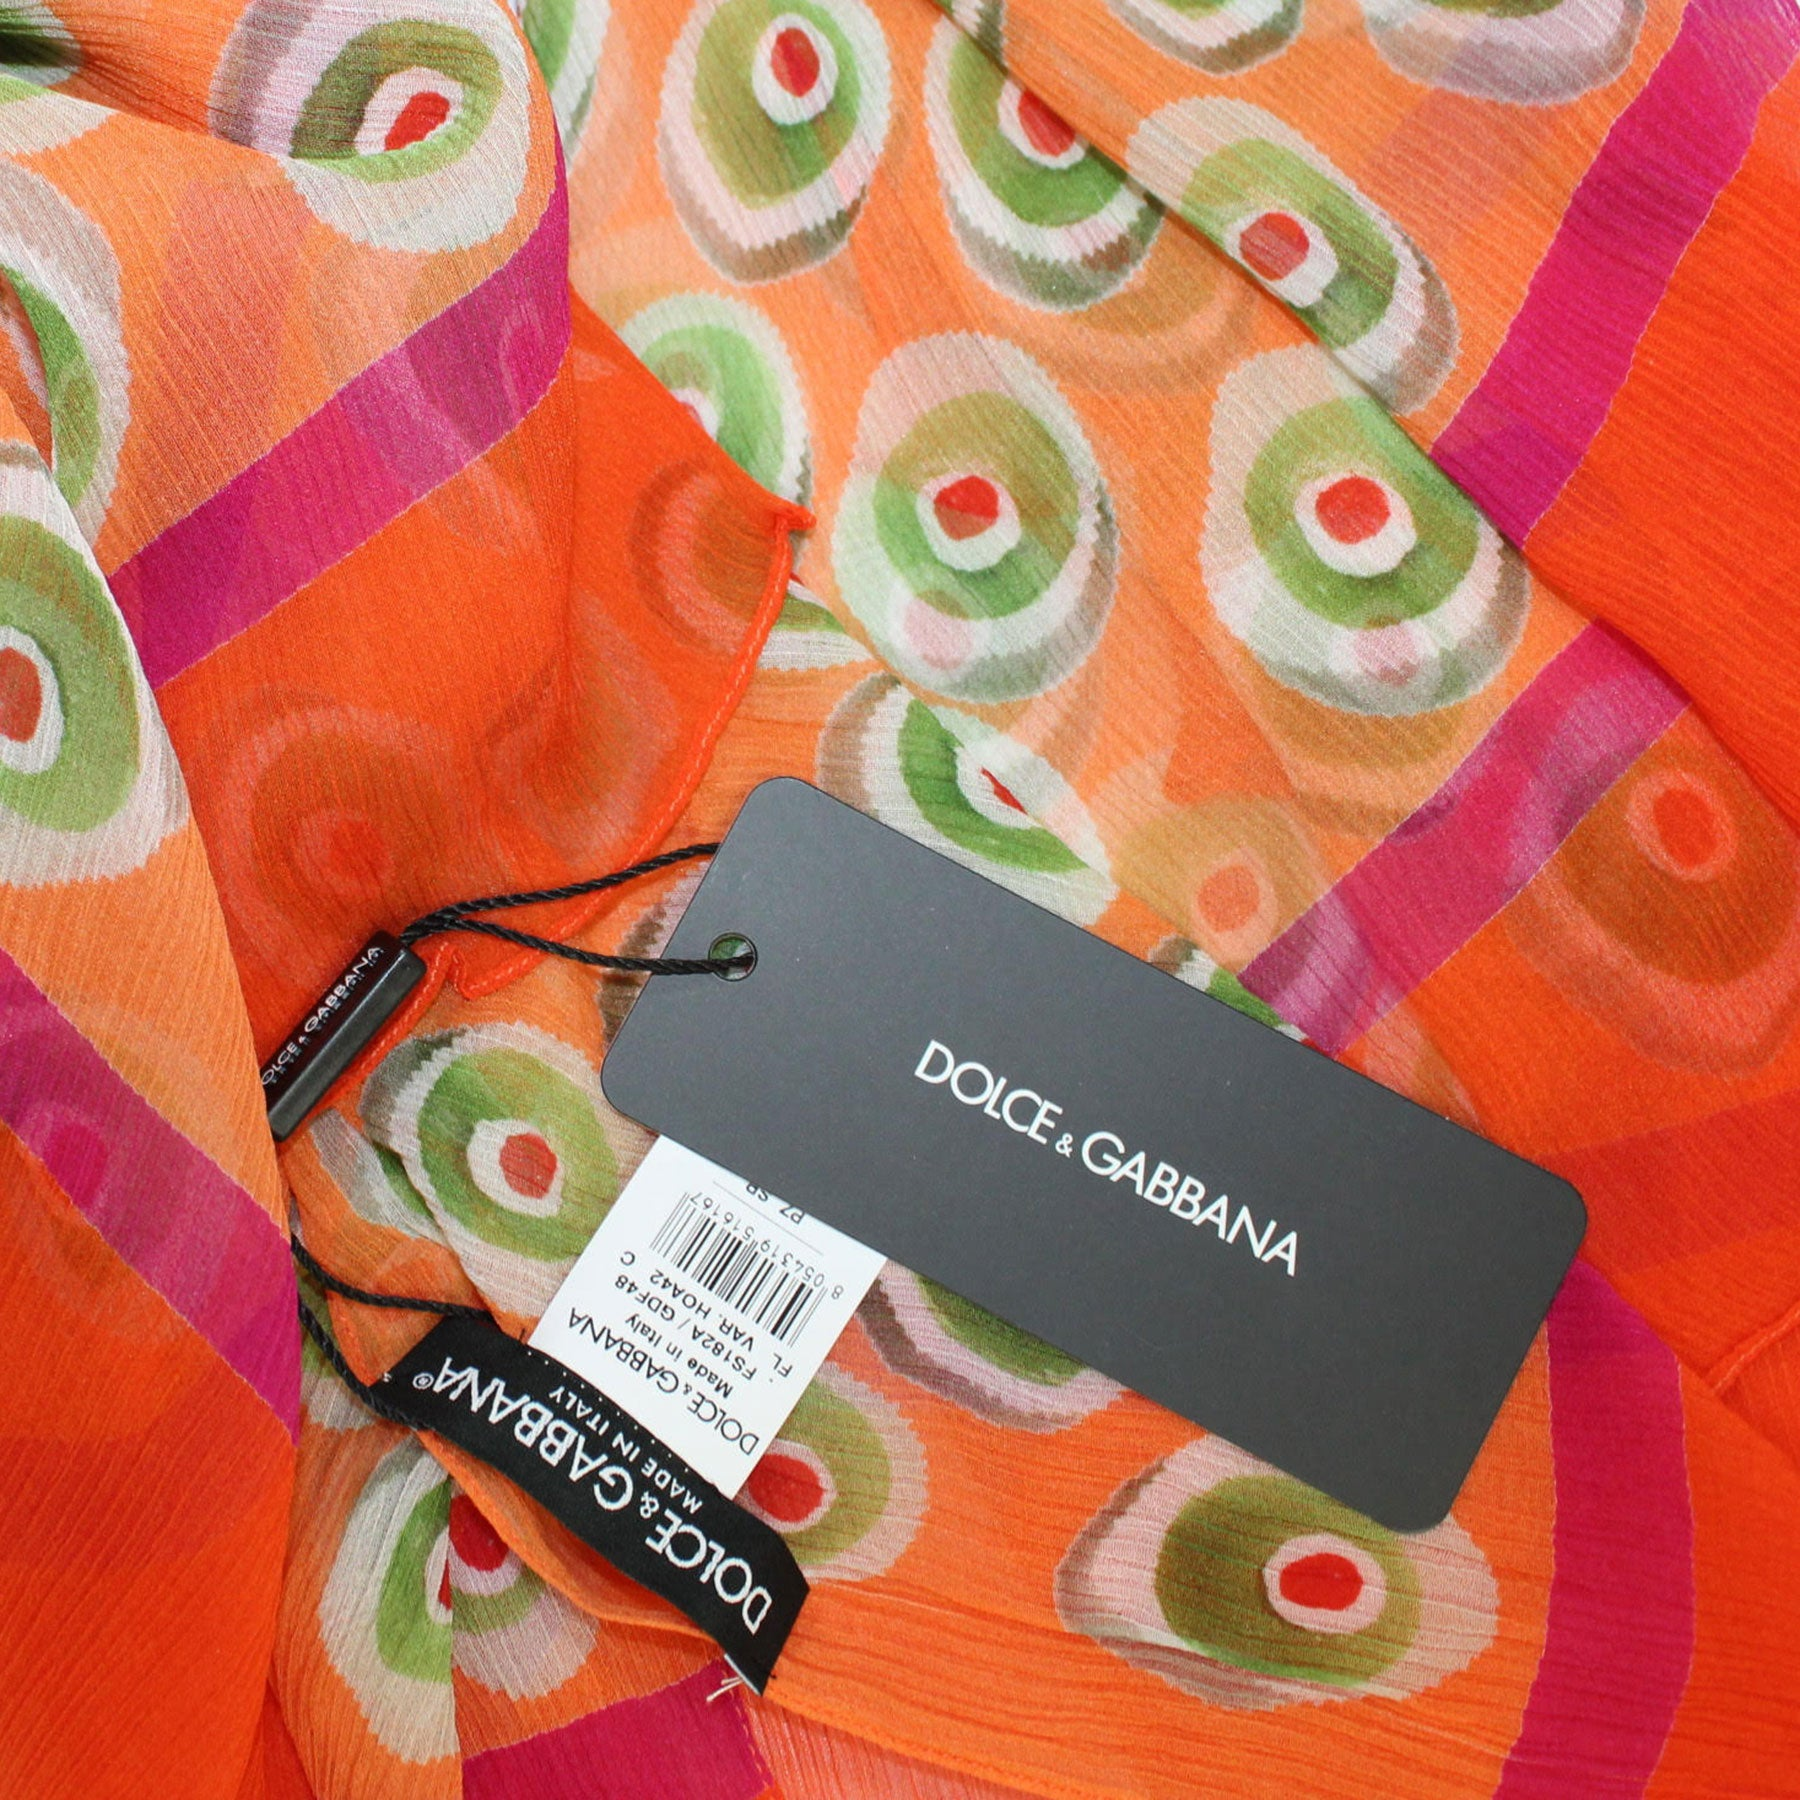 Dolce & Gabbana Scarf Orange Green Maroon Candies - Extra Large Cashmere Wrap